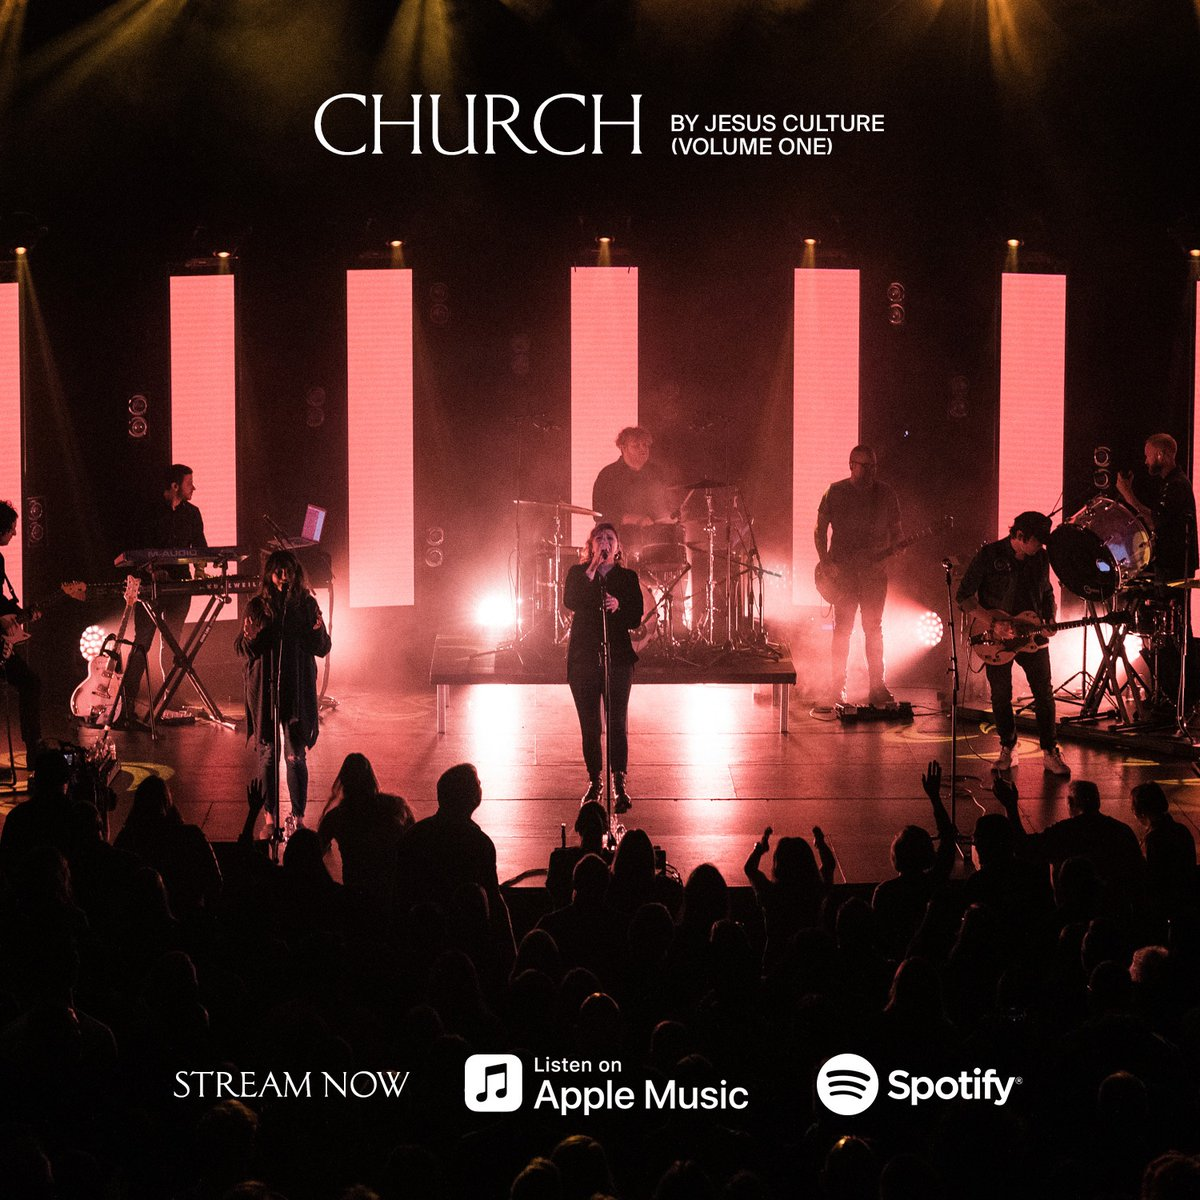 """So excited that our new Jesus Culture album, """"Church - Volume 1,"""" is out! We pray that these songs become the backdrop for many encounters with Jesus and put words to the prayers and cries of hearts. https://t.co/V7PFSF0m0P https://t.co/08VwrgdAWK"""